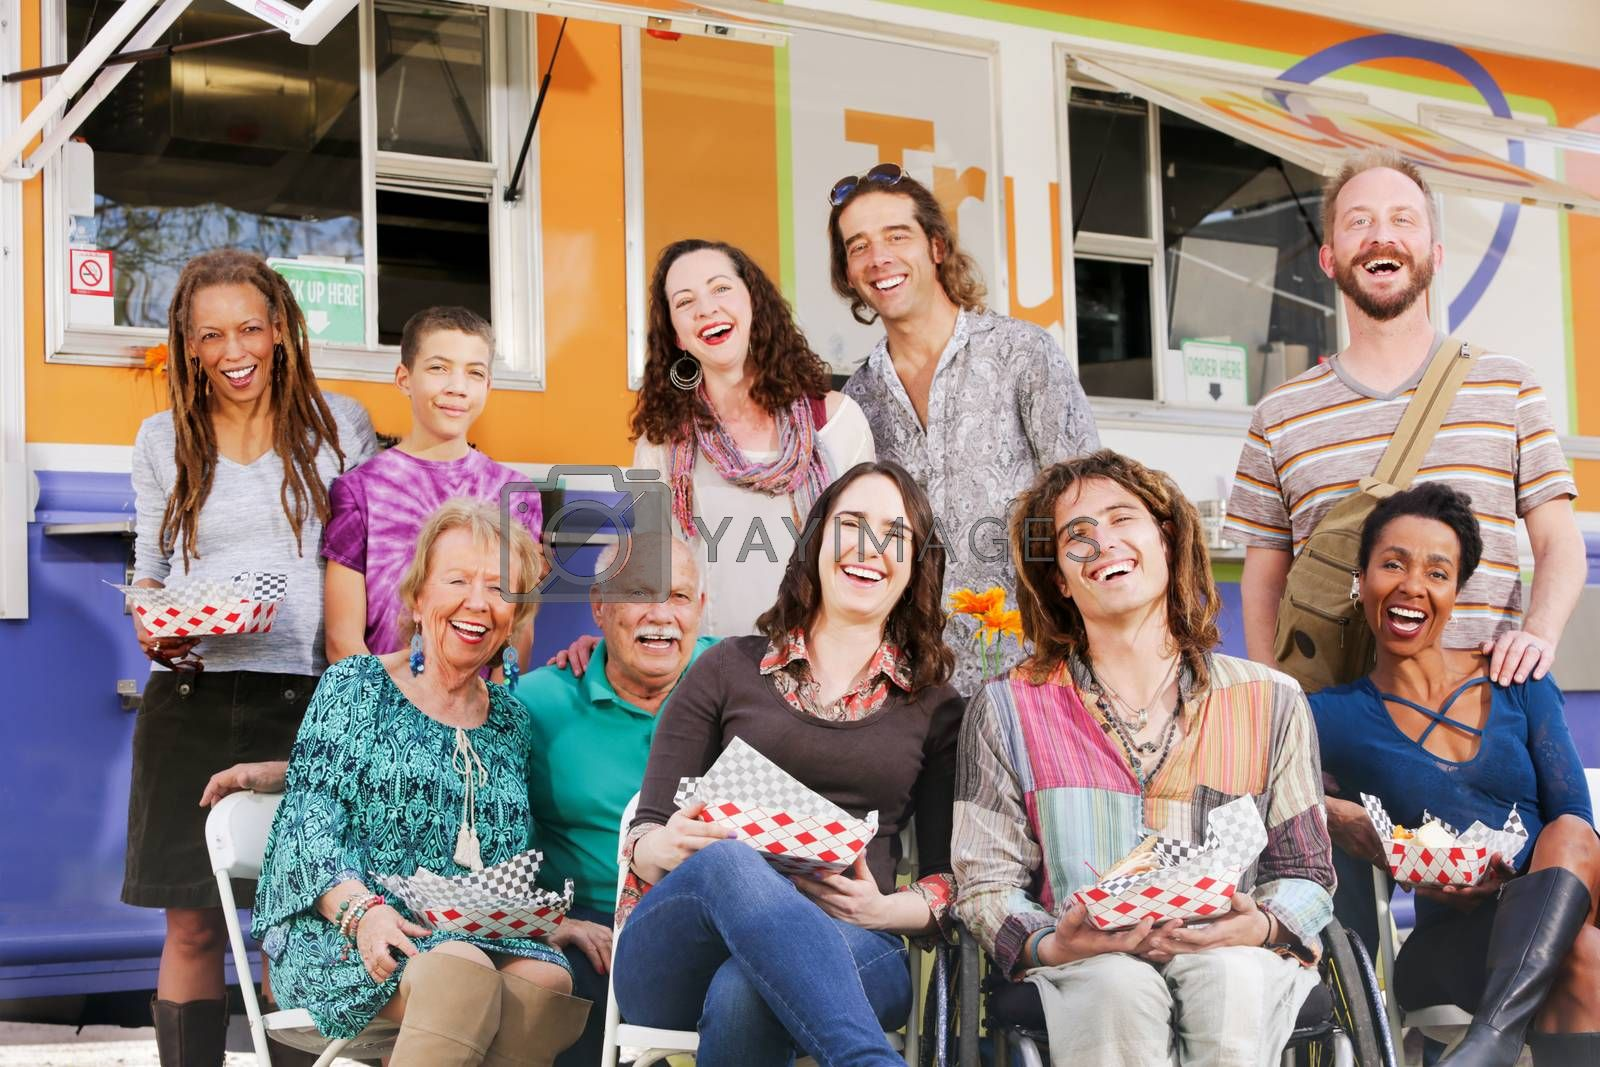 Happy diverse group laughing together outside of a food truck